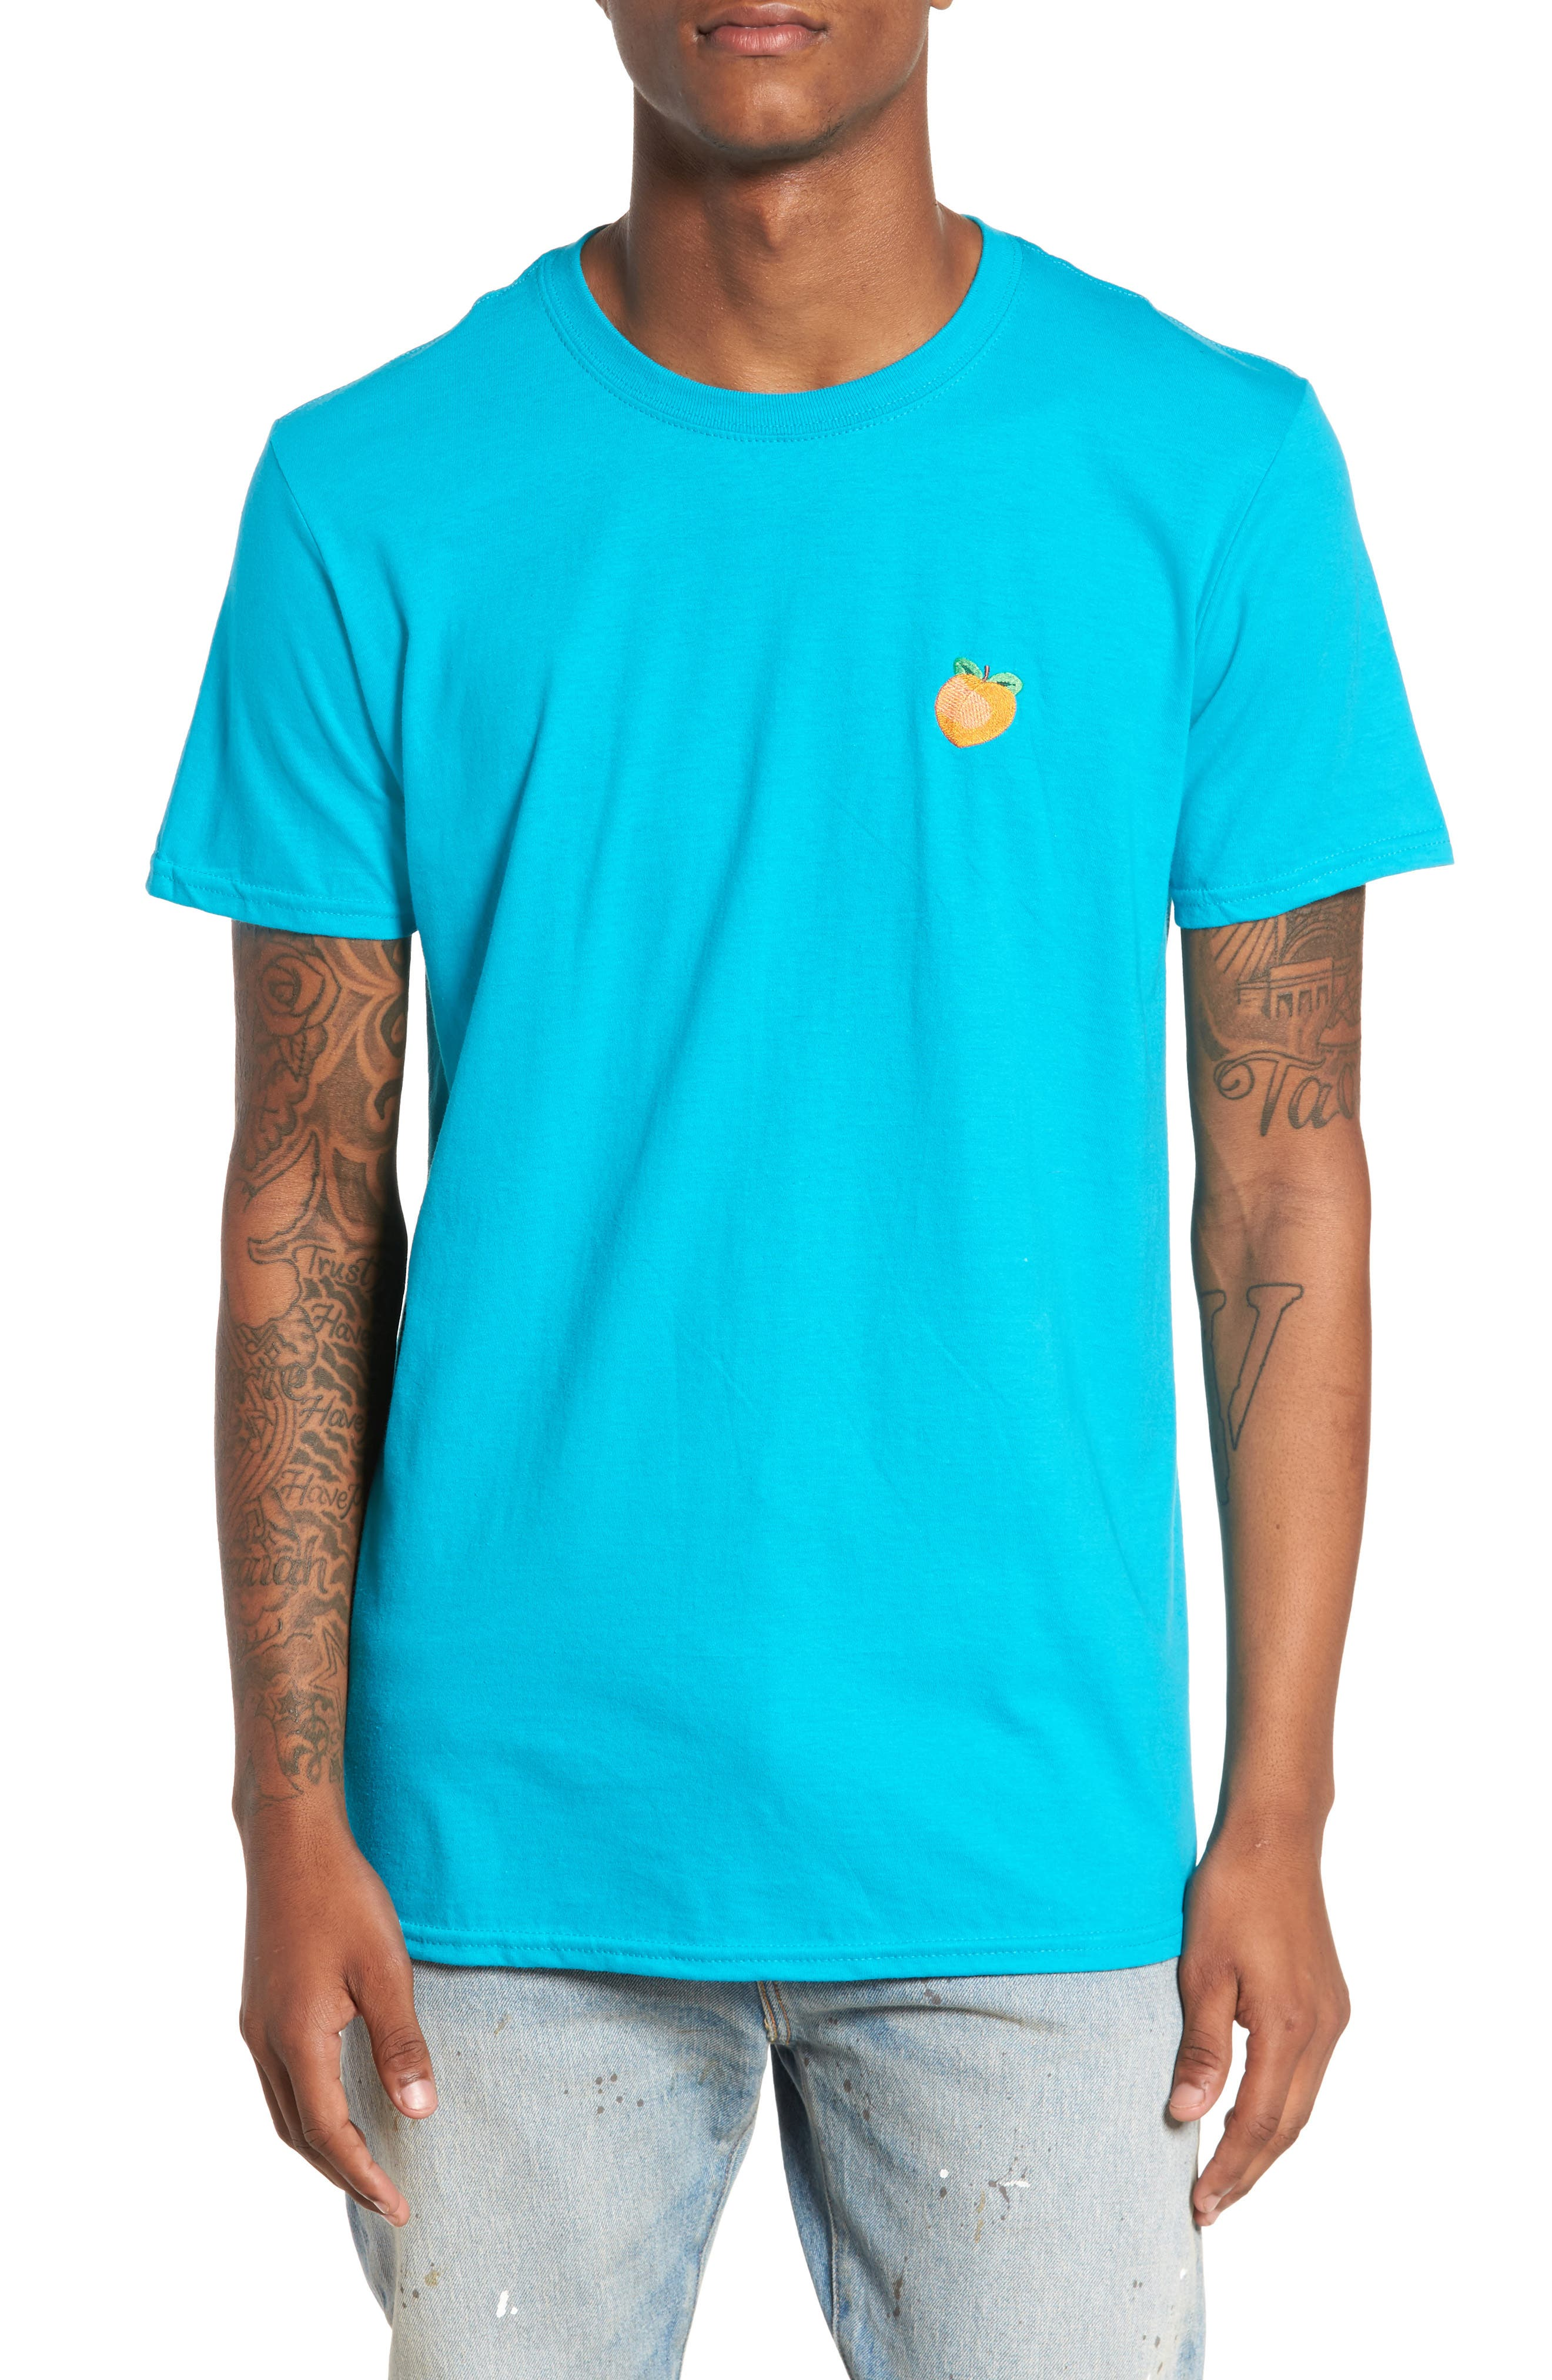 Alternate Image 1 Selected - The Rail Embroidered Peach T-Shirt